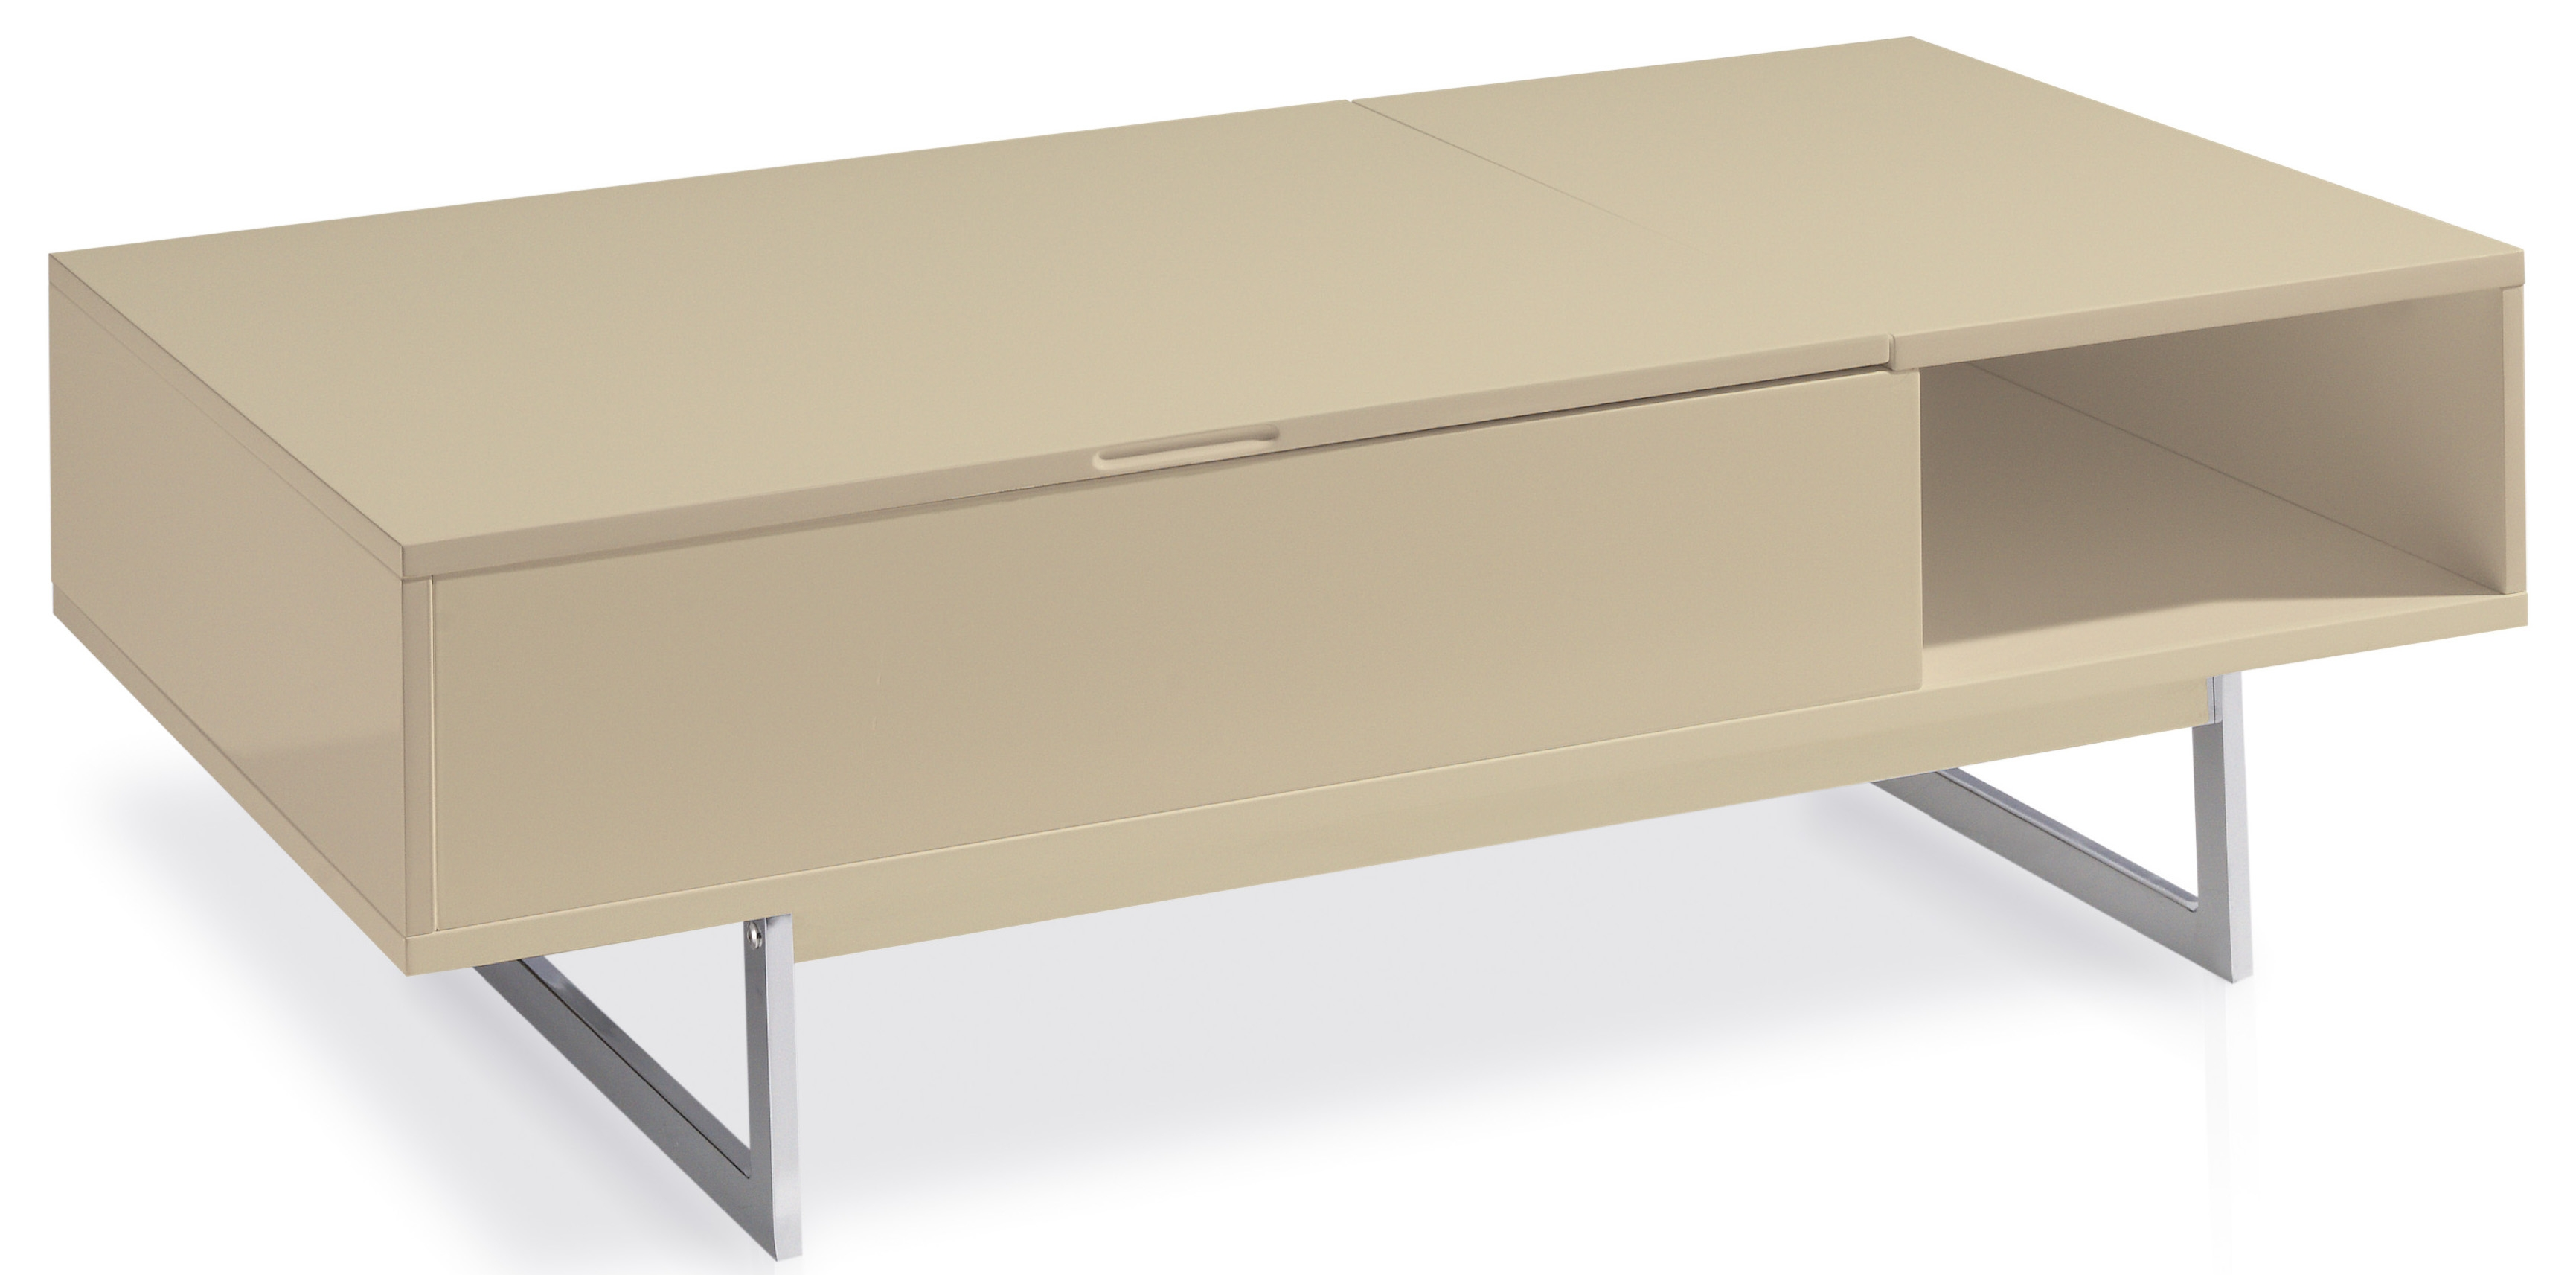 Table basse moderne beige - Table basse laquee beige ...